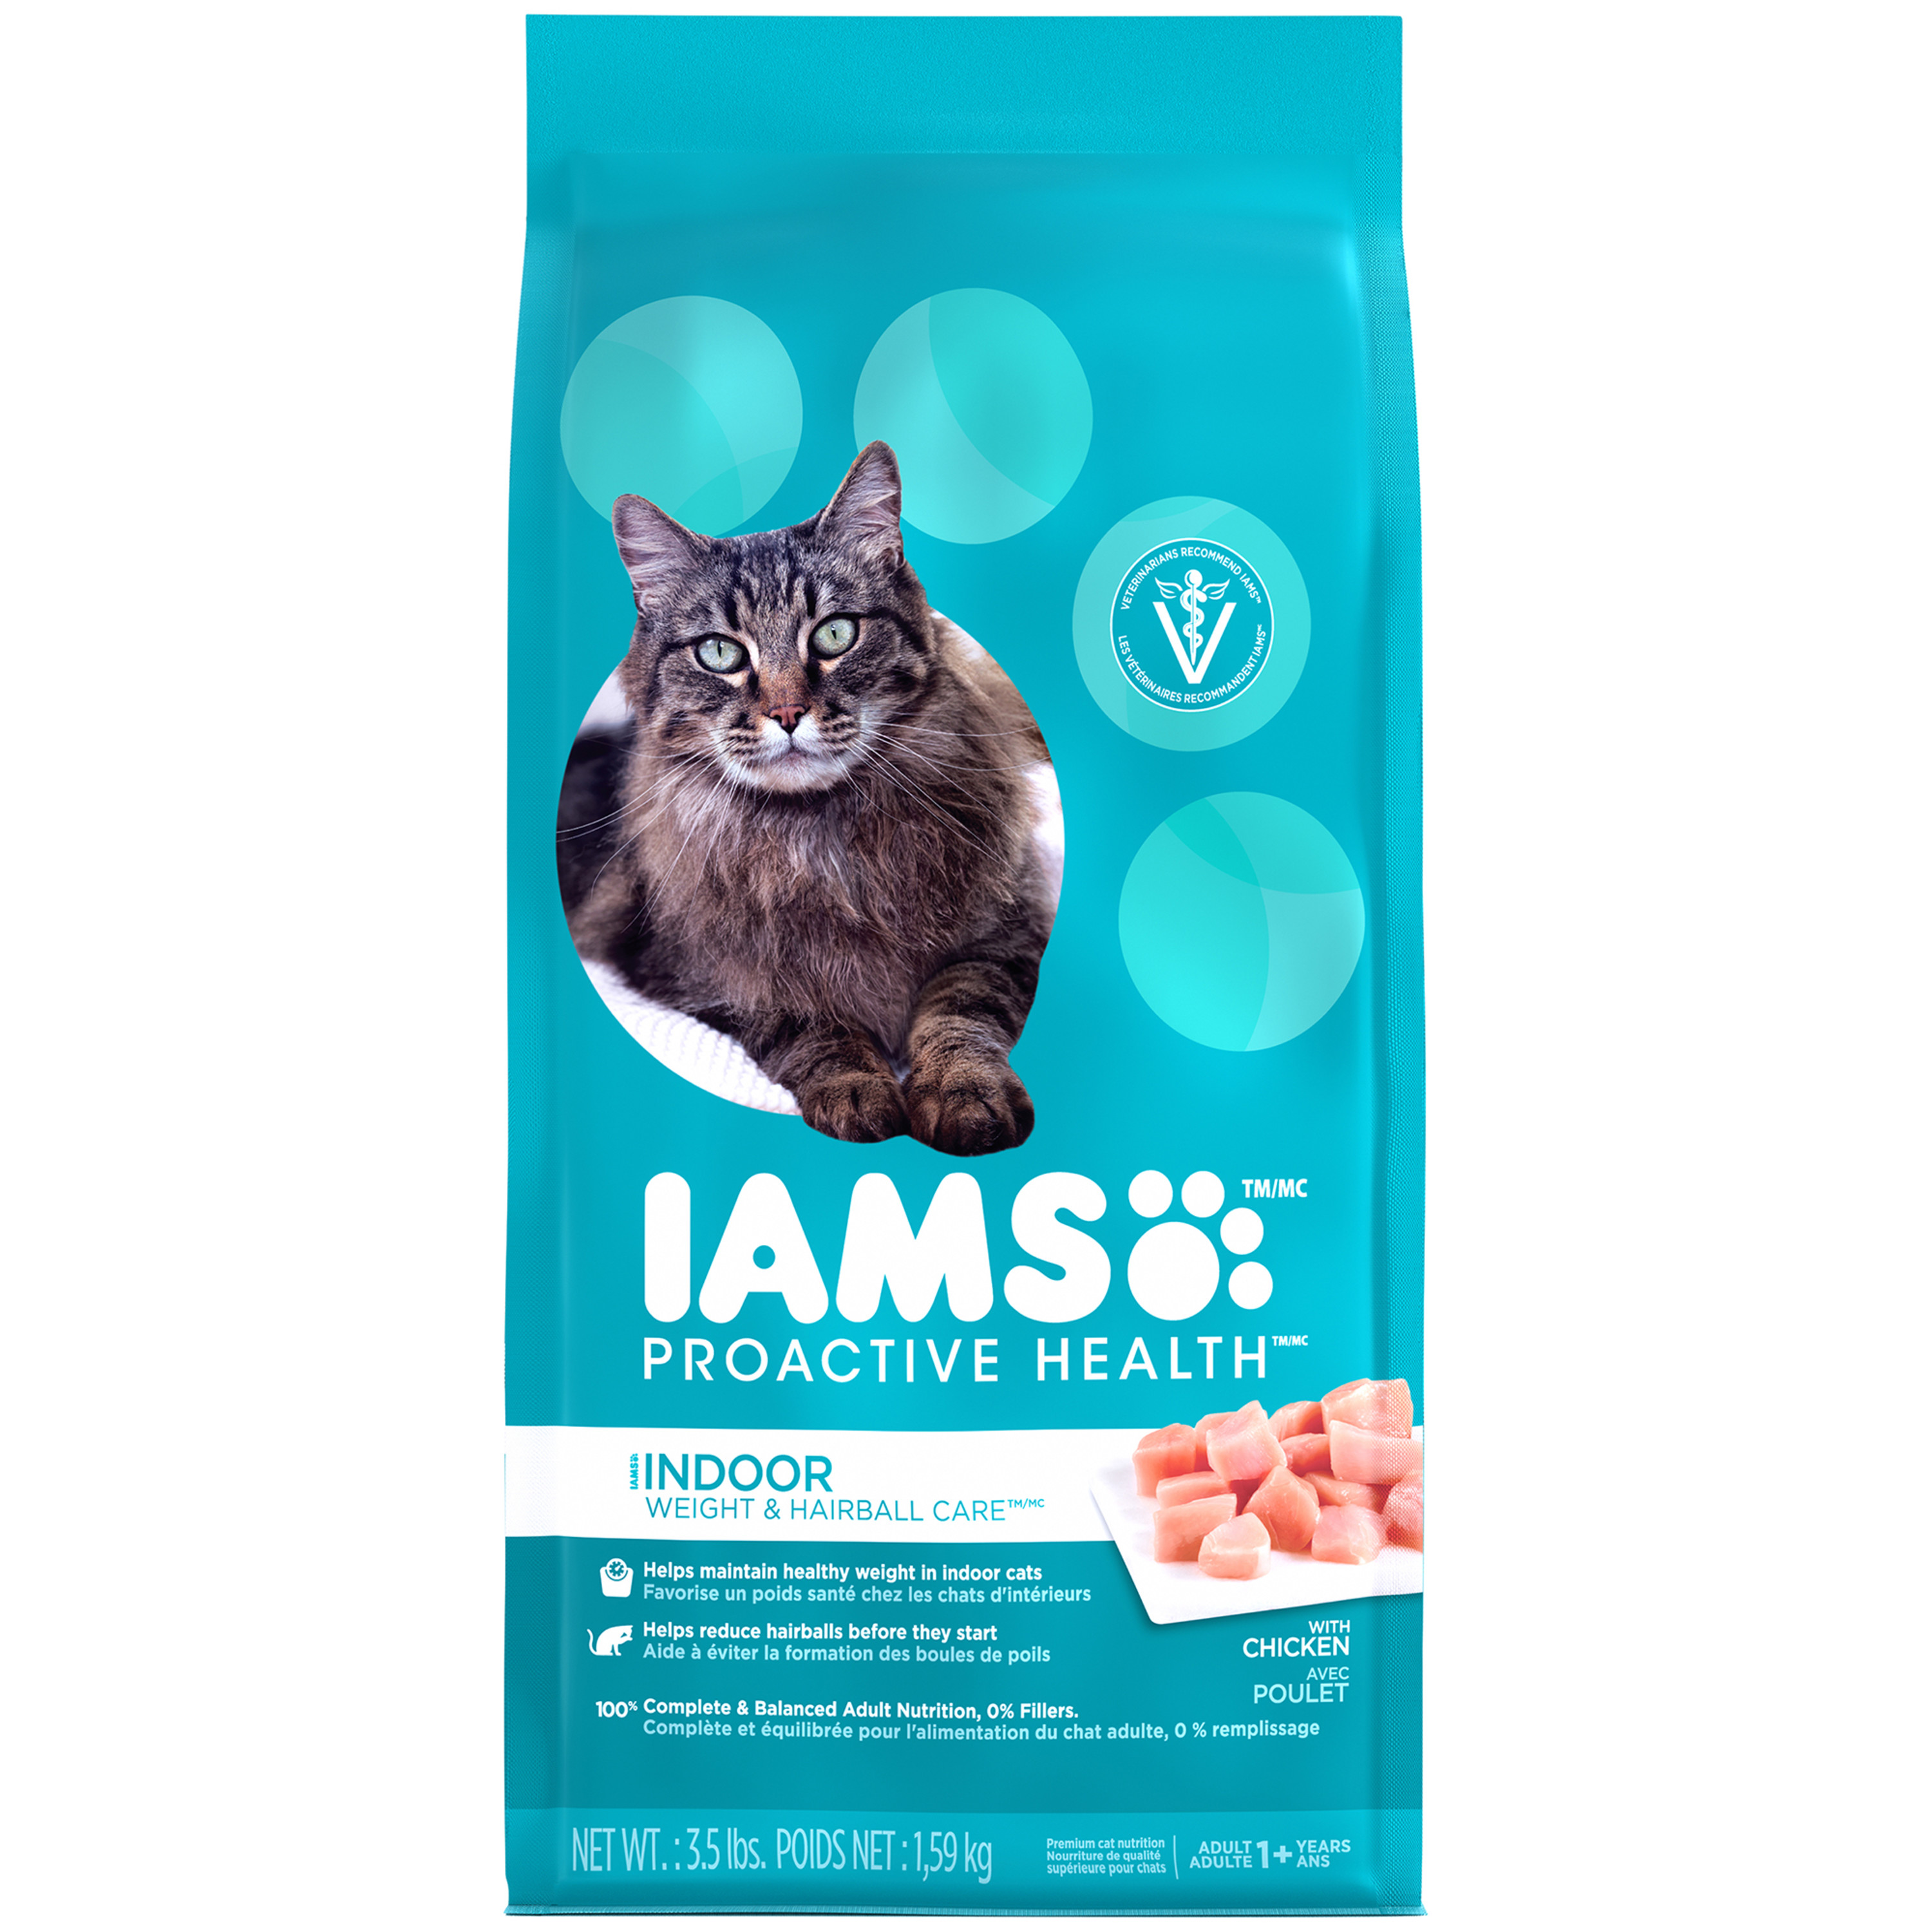 IAMS PROACTIVE HEALTH INDOOR WEIGHT and HAIRBALL CARE Dry Cat Food 3.5 Pounds by Mars Petcare